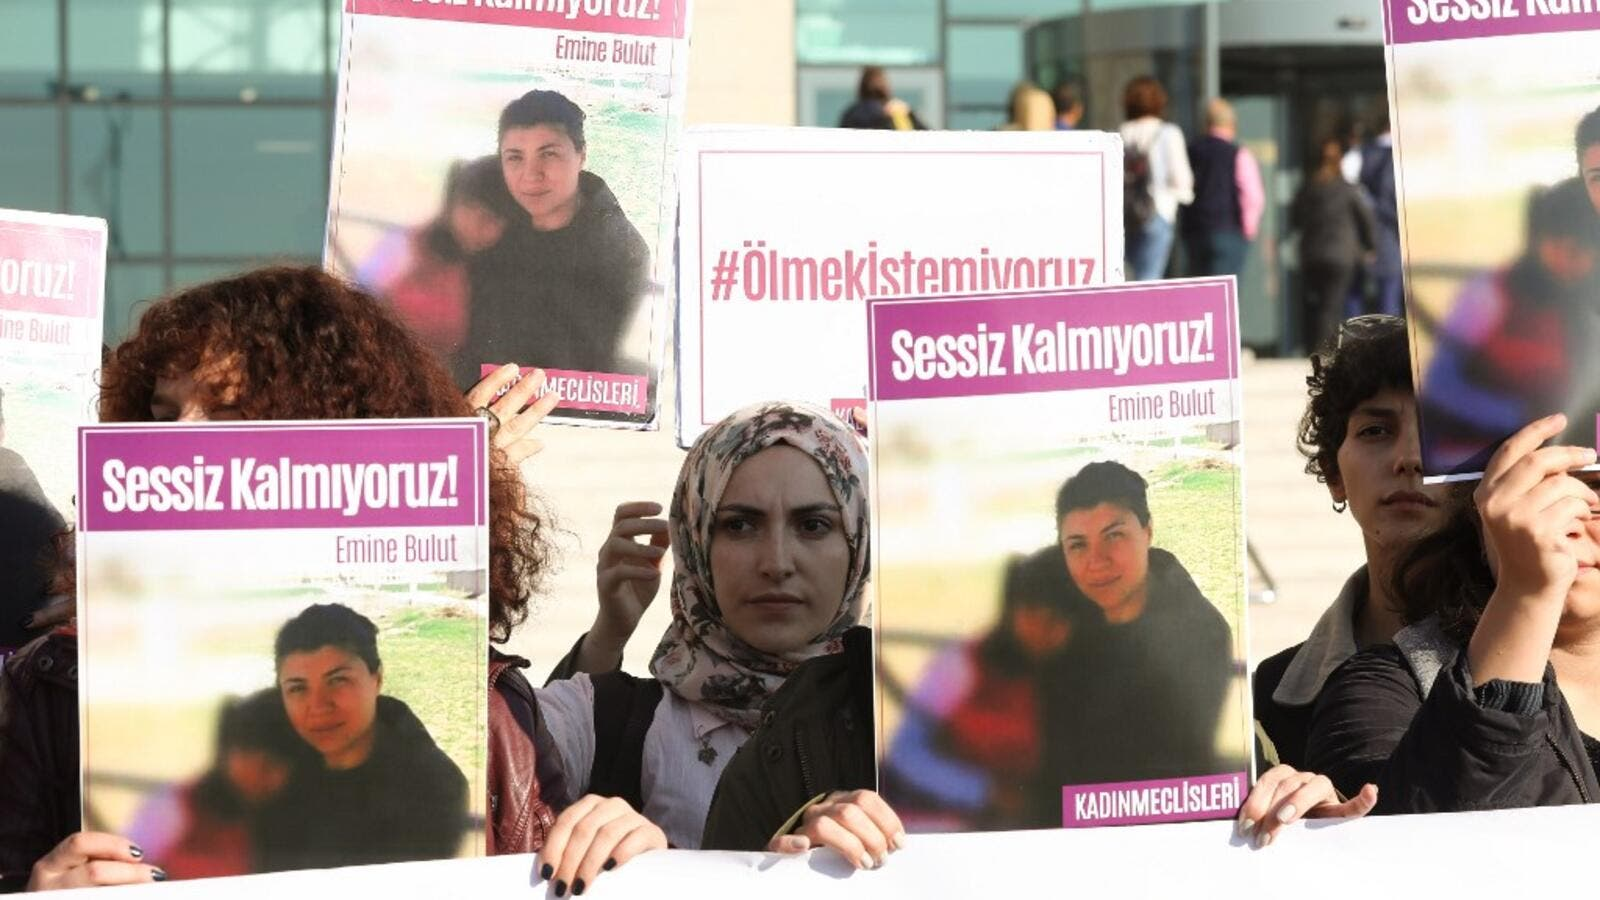 Women hold placards of Emine Bulut, who was killed by her husband, as they gather outside the Kırıkkale court house for the first hearing in the central Anatolian city of Kirikkale on October 9, 2019.  (AFP/ File Photo)